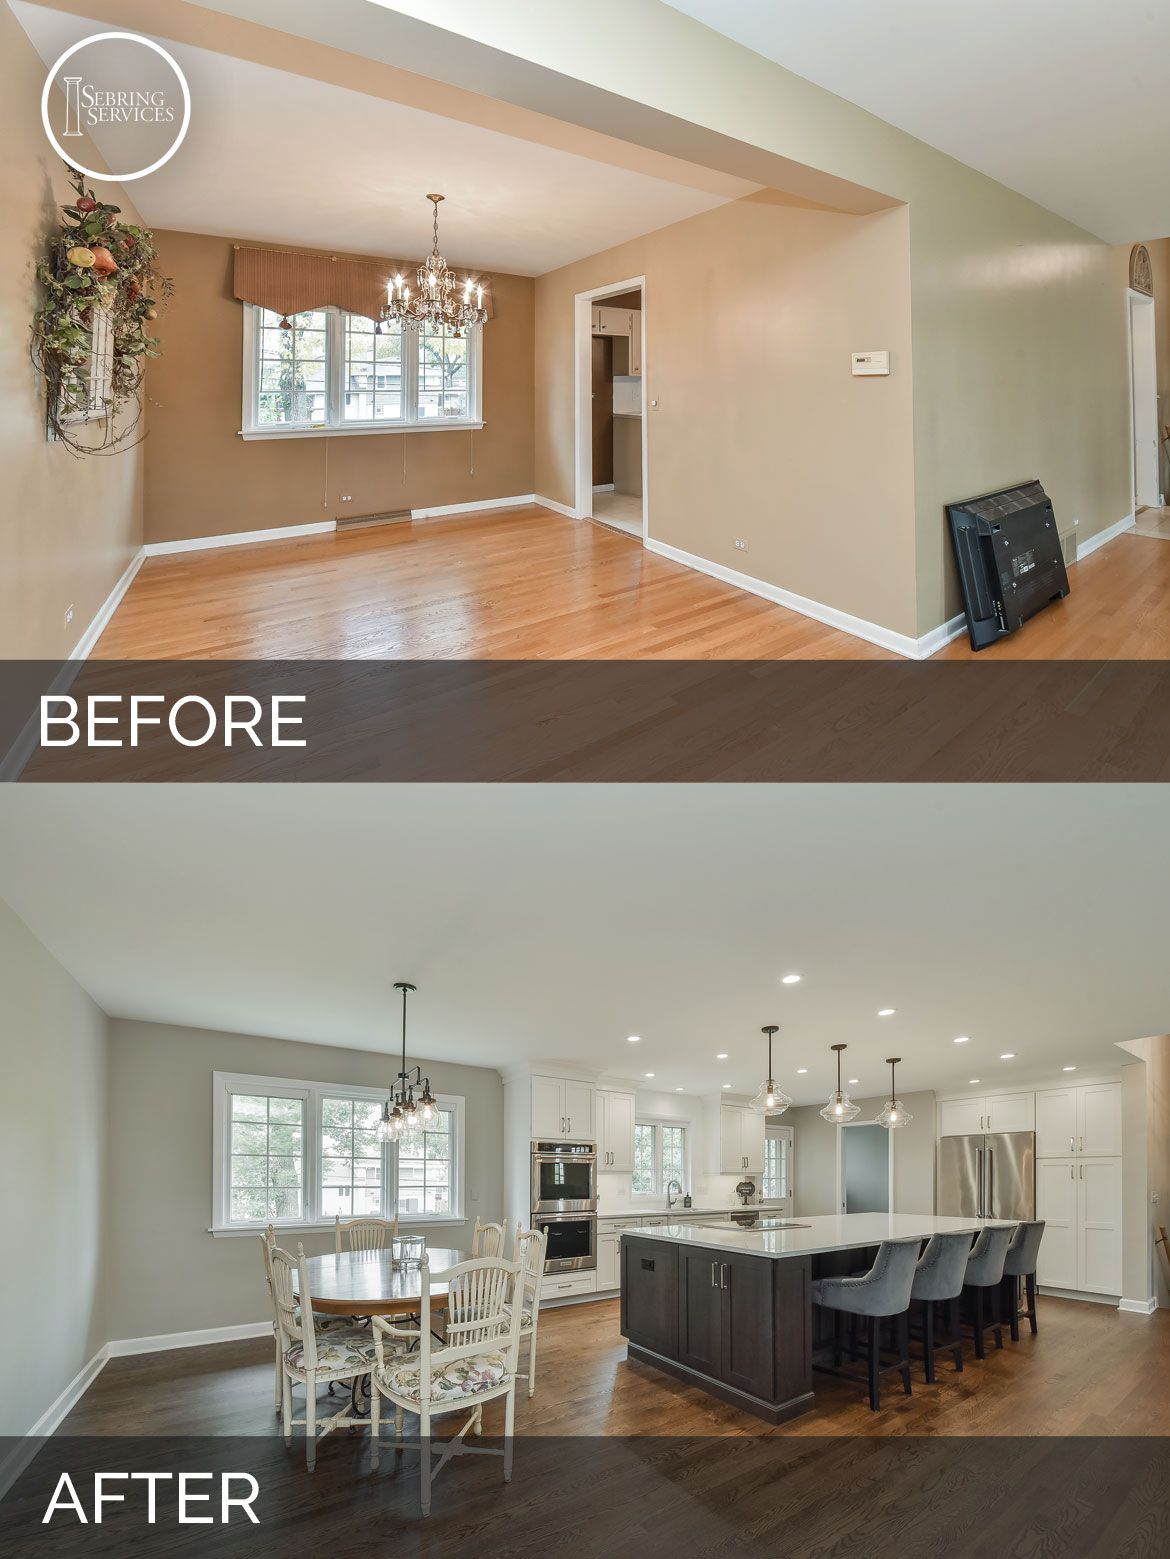 Dale & Tracey's Kitchen Before & After Pictures Home